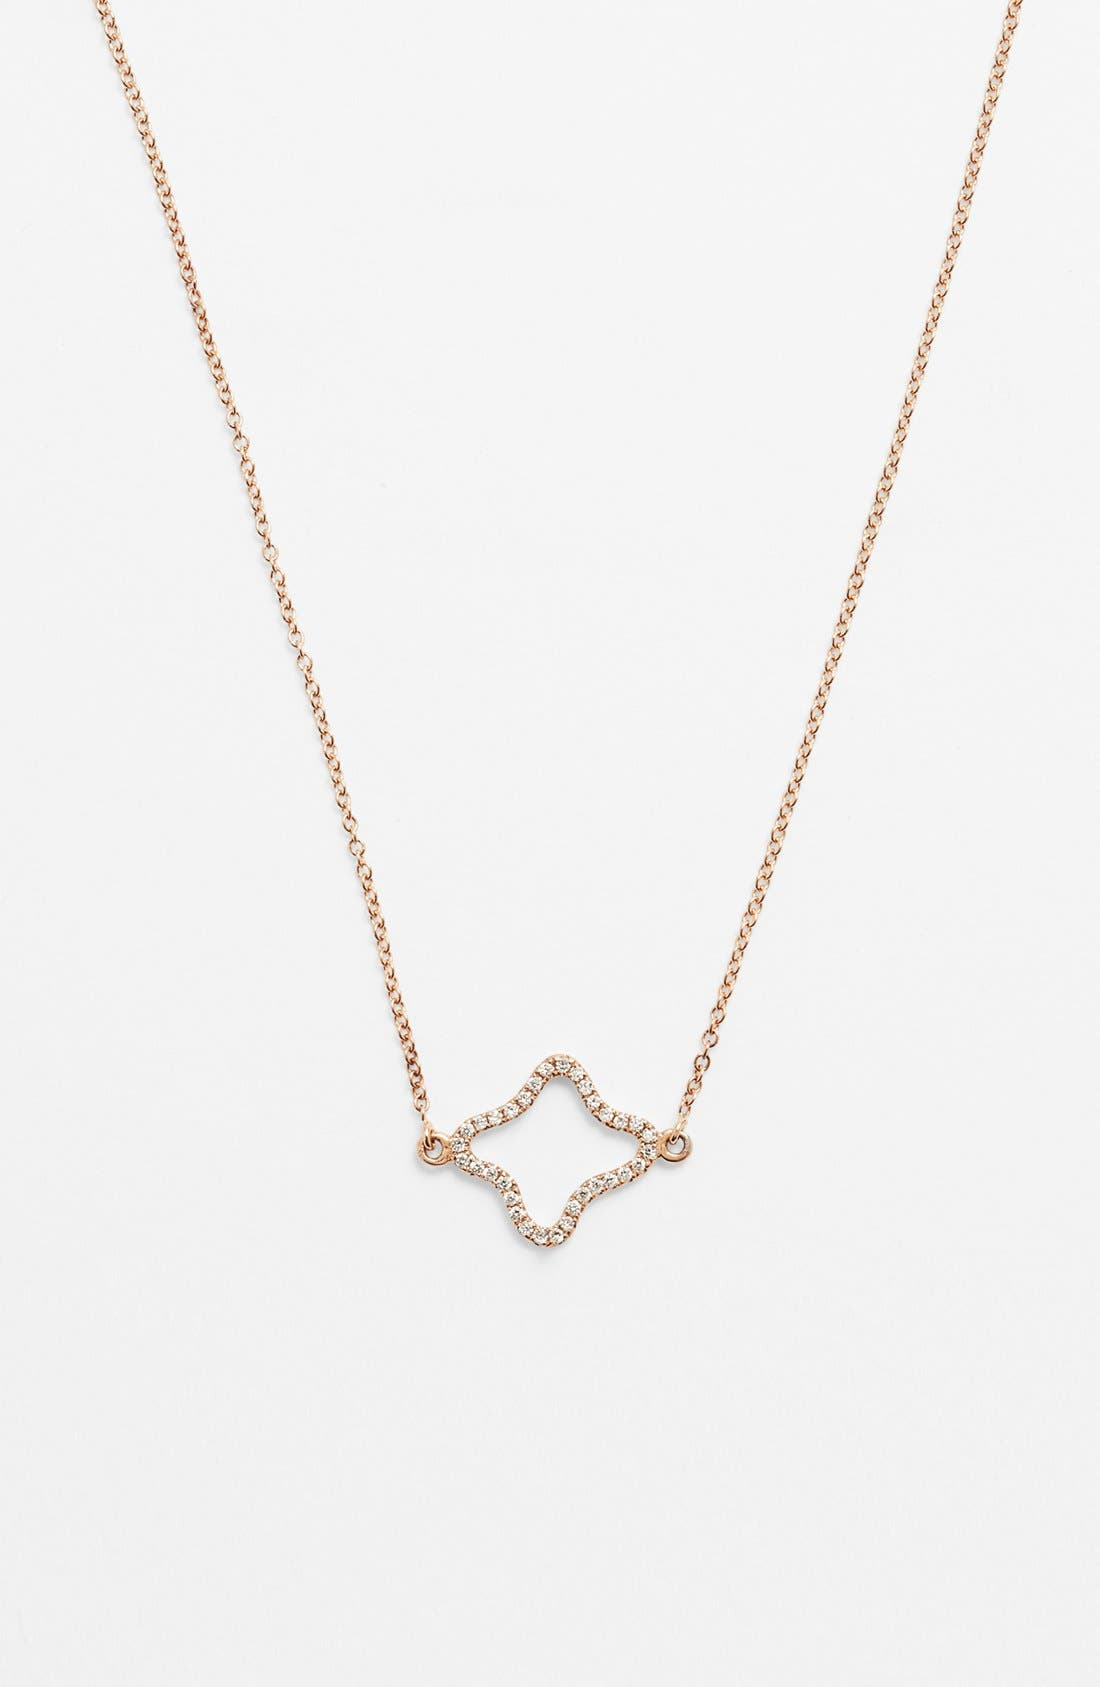 Main Image - Bony Levy Pavé Diamond Quatrefoil Pendant Necklace (Nordstrom Exclusive)